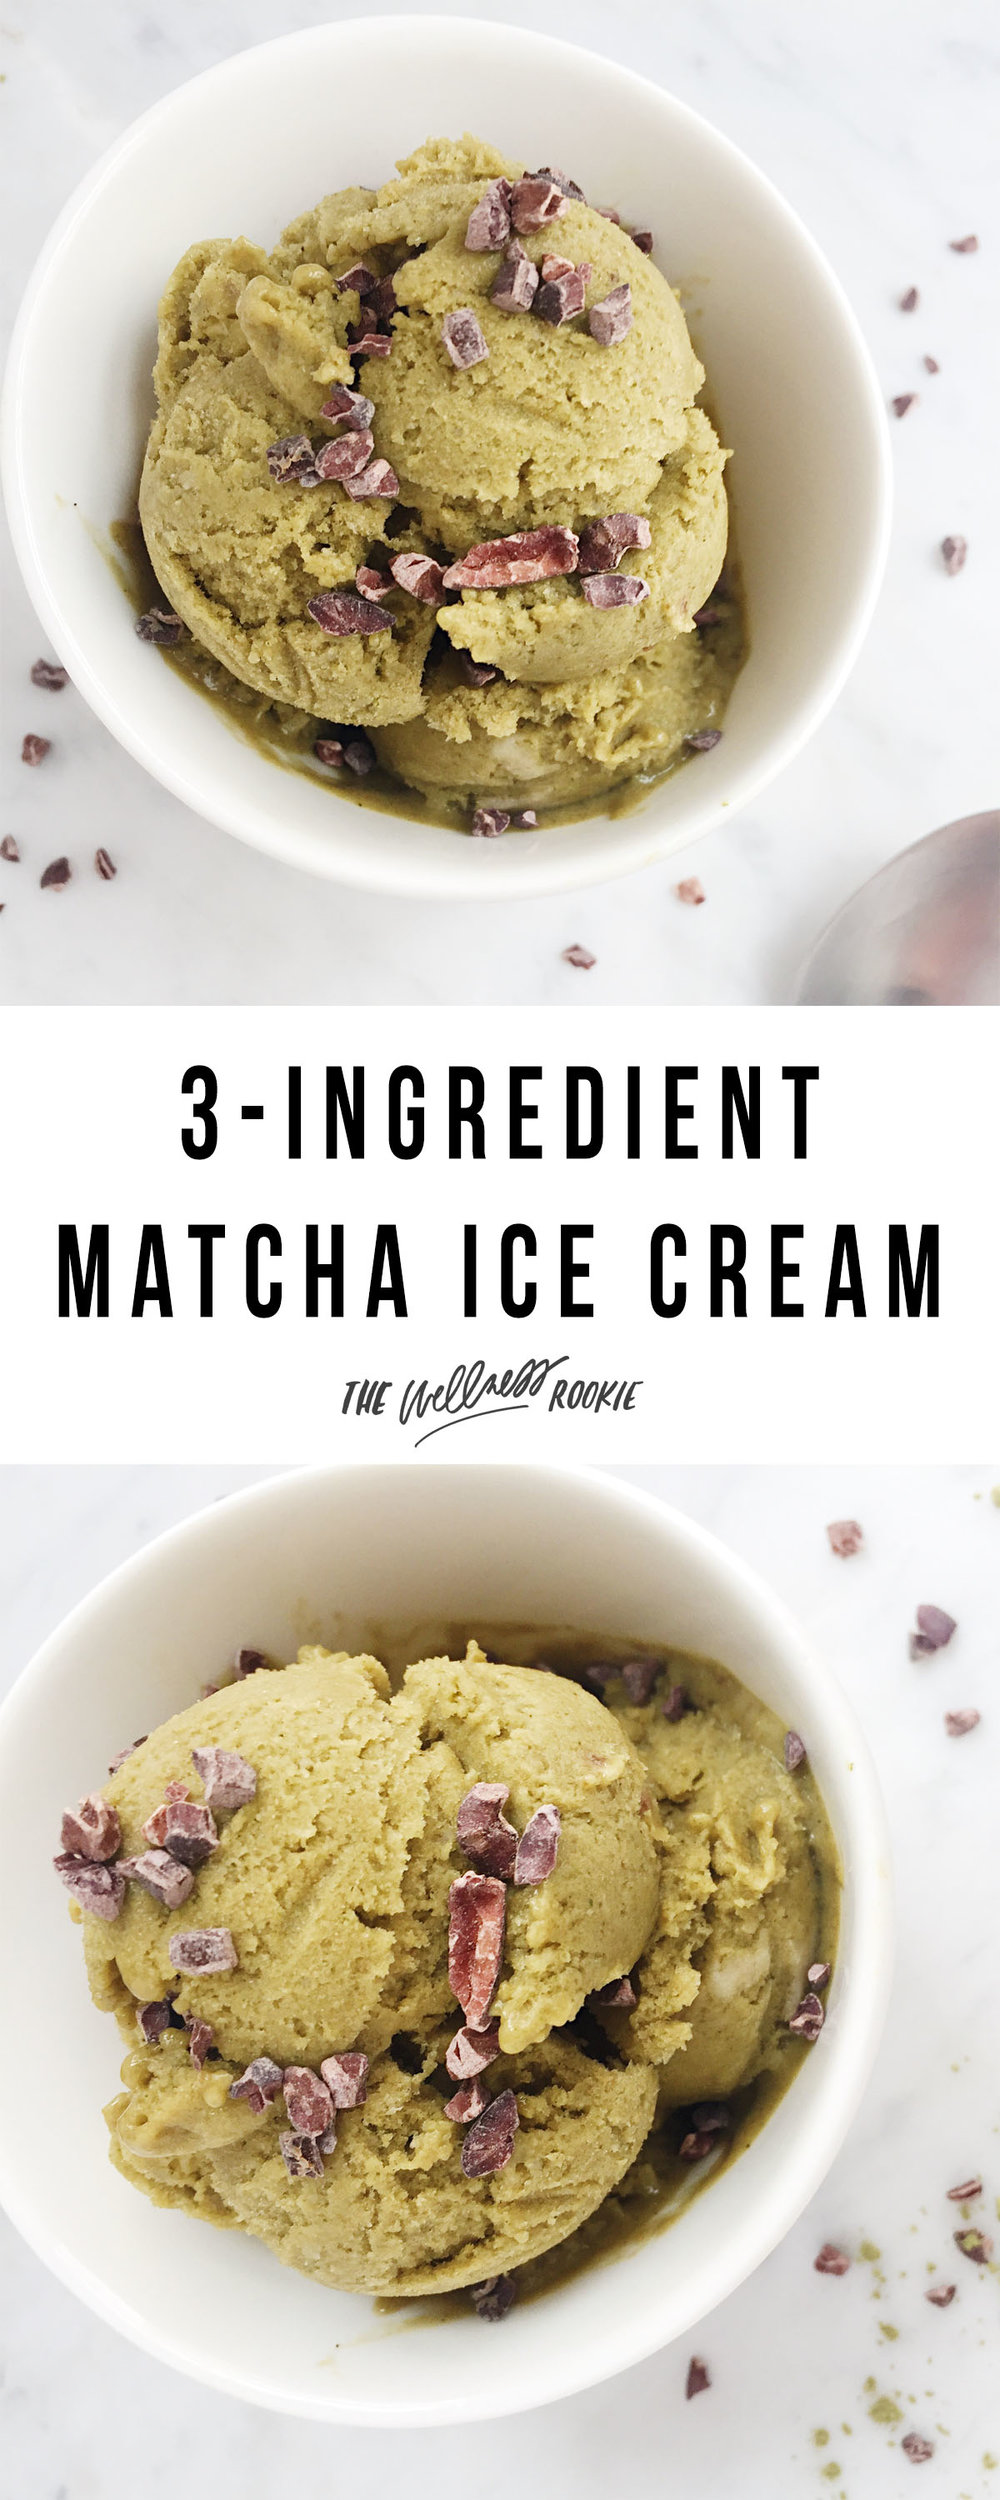 3 Ingredients Ice Cream